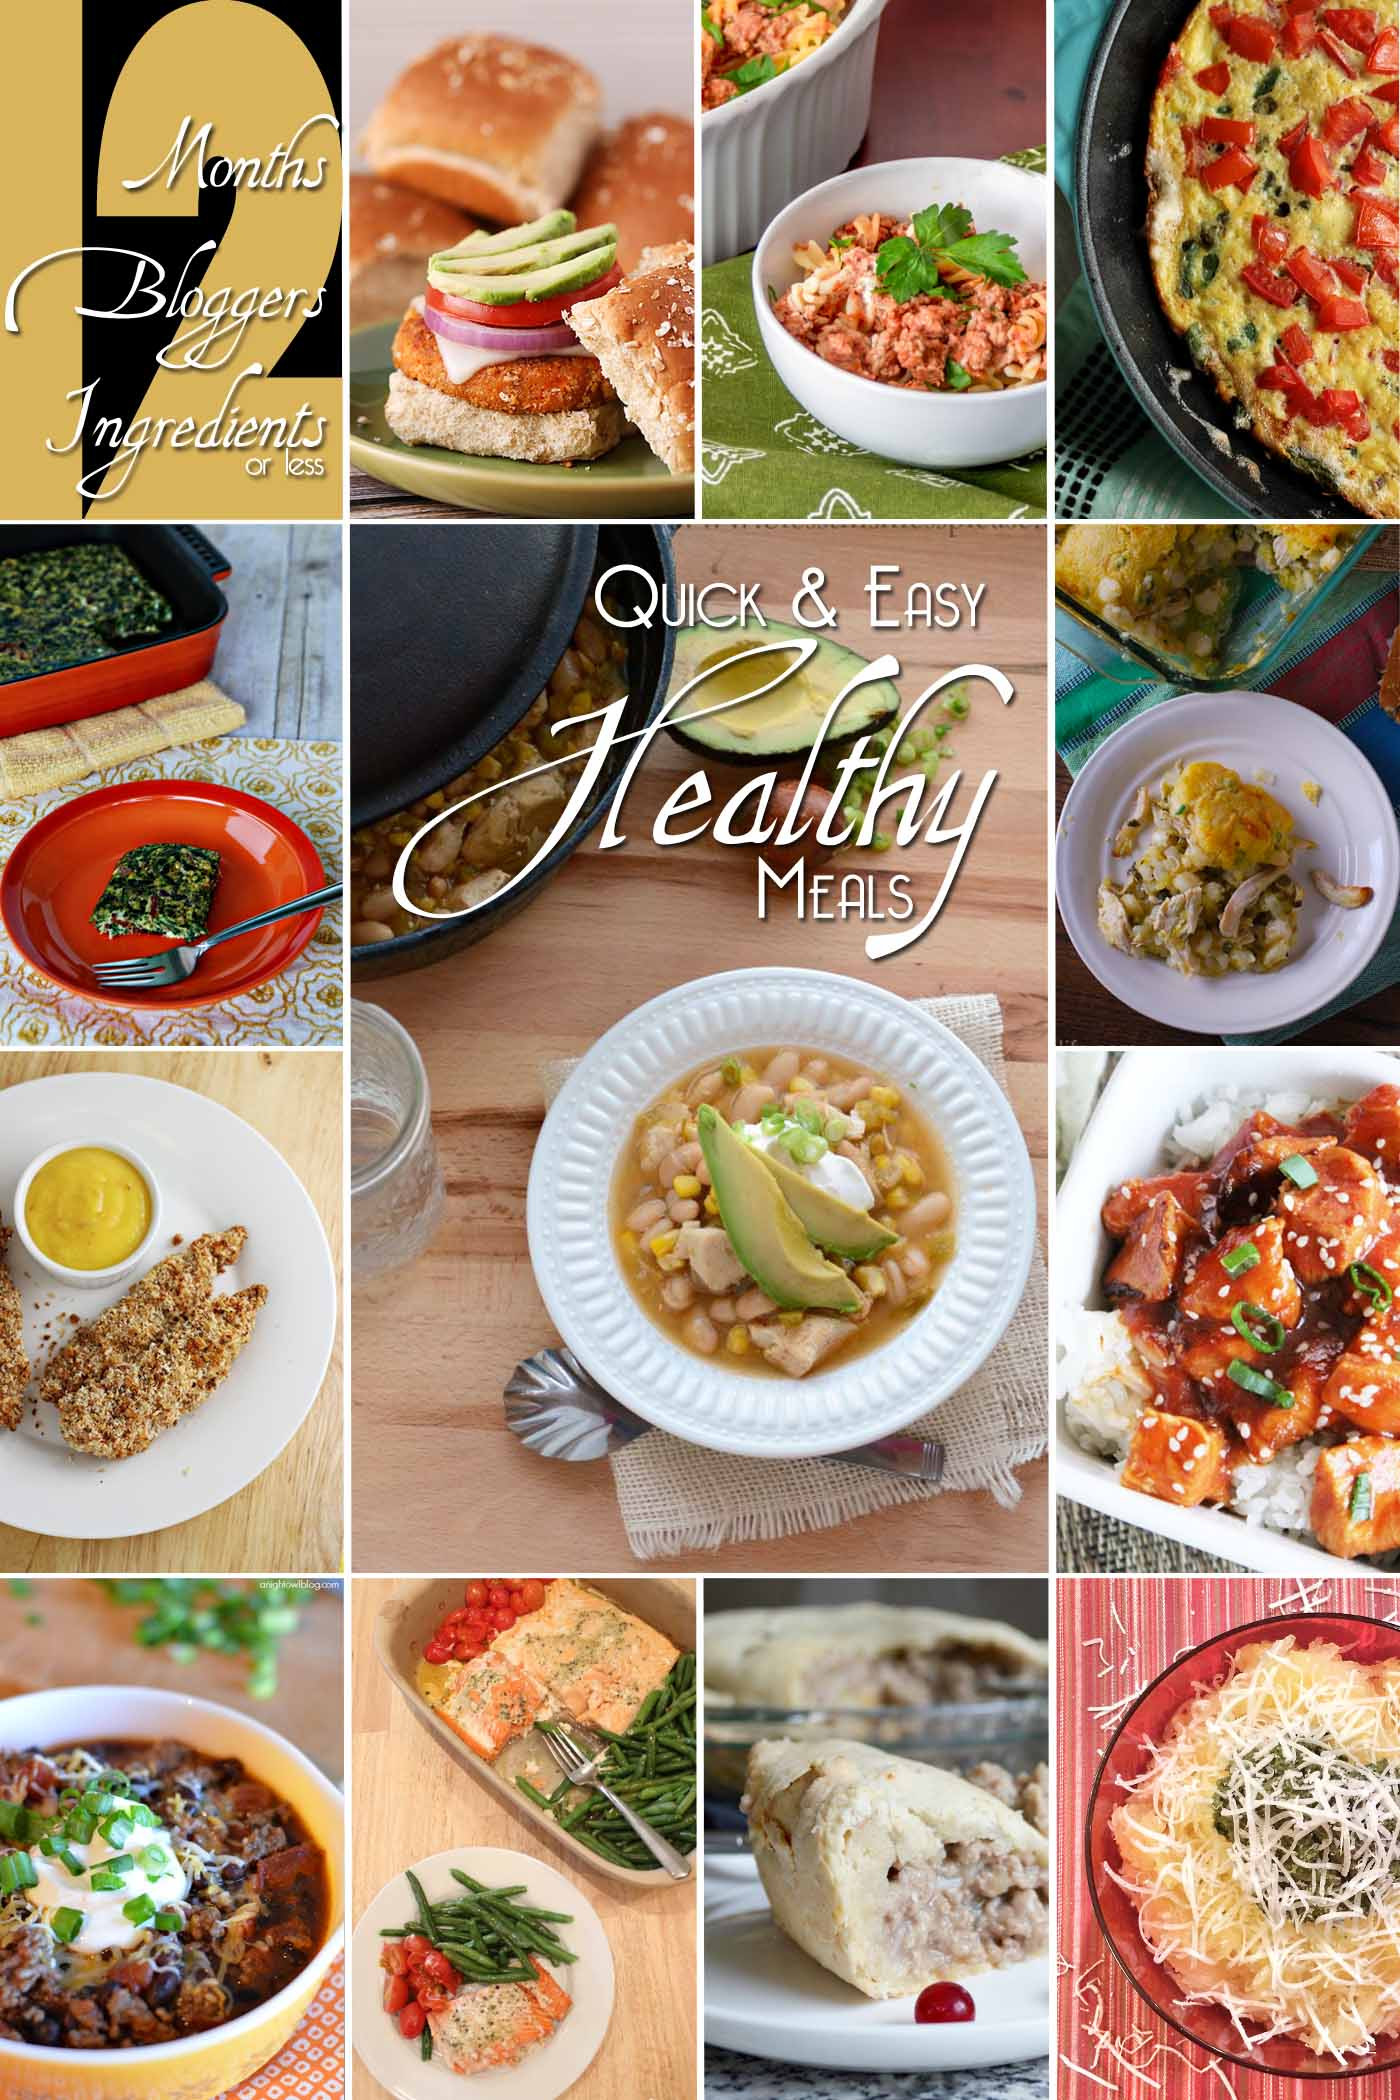 Fast Easy Healthy Dinners  Quick & Healthy Recipe e Pan Baked Salmon & Ve ables